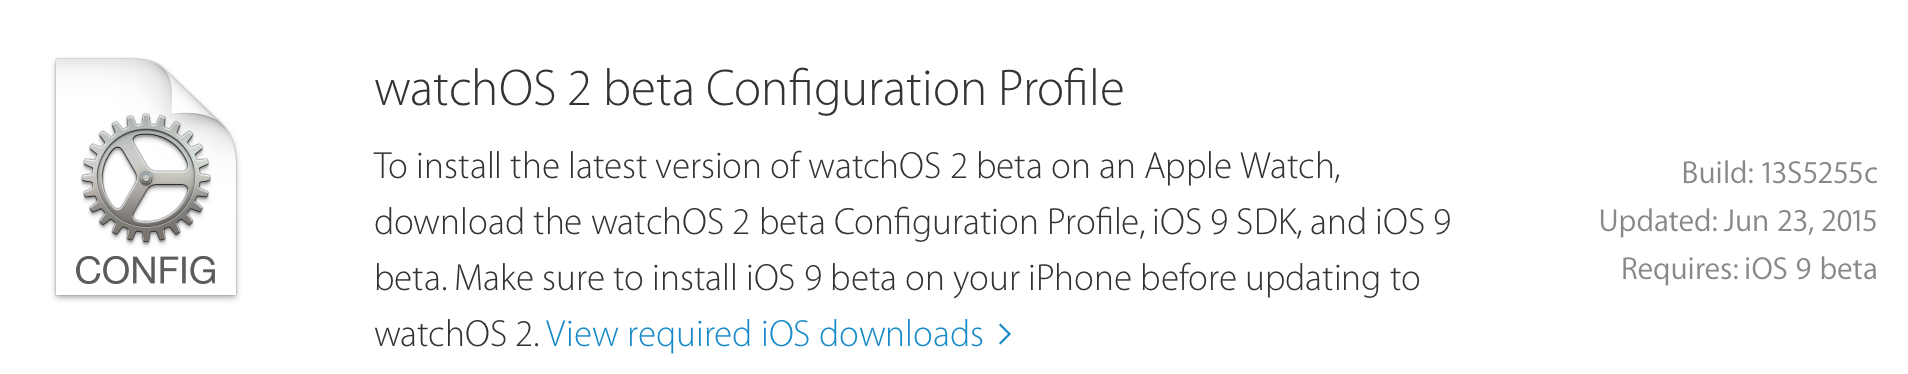 watchOS-Beta-Versionen-bildschirmfoto-2015-06-23-um-19.19.55.png